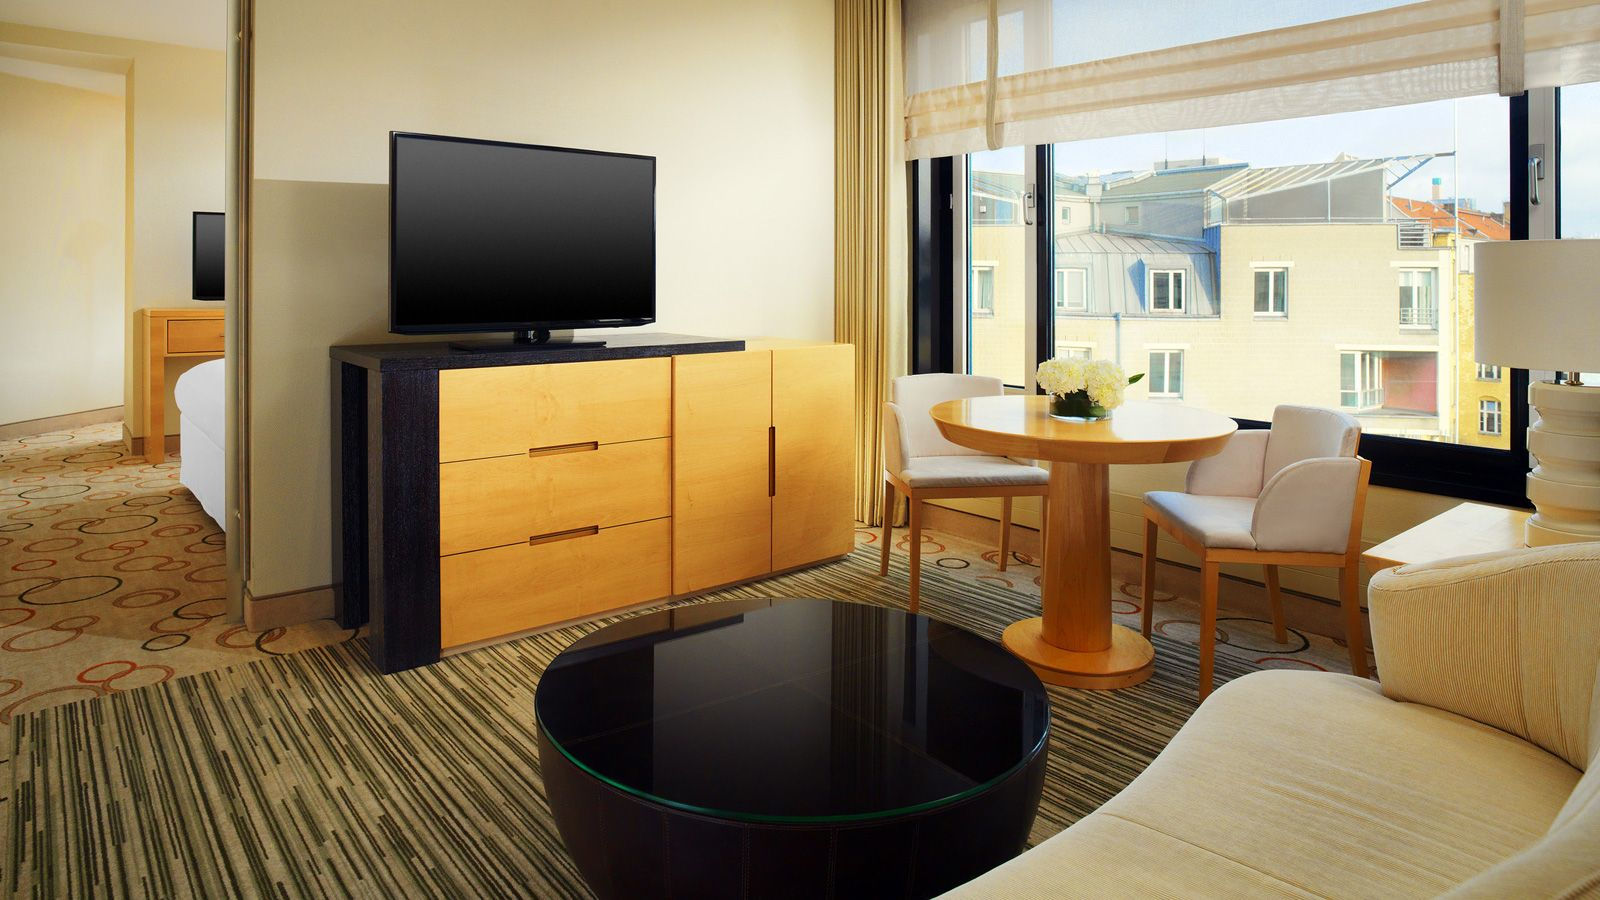 Executive Suite at the Sheraton hotel Berlin